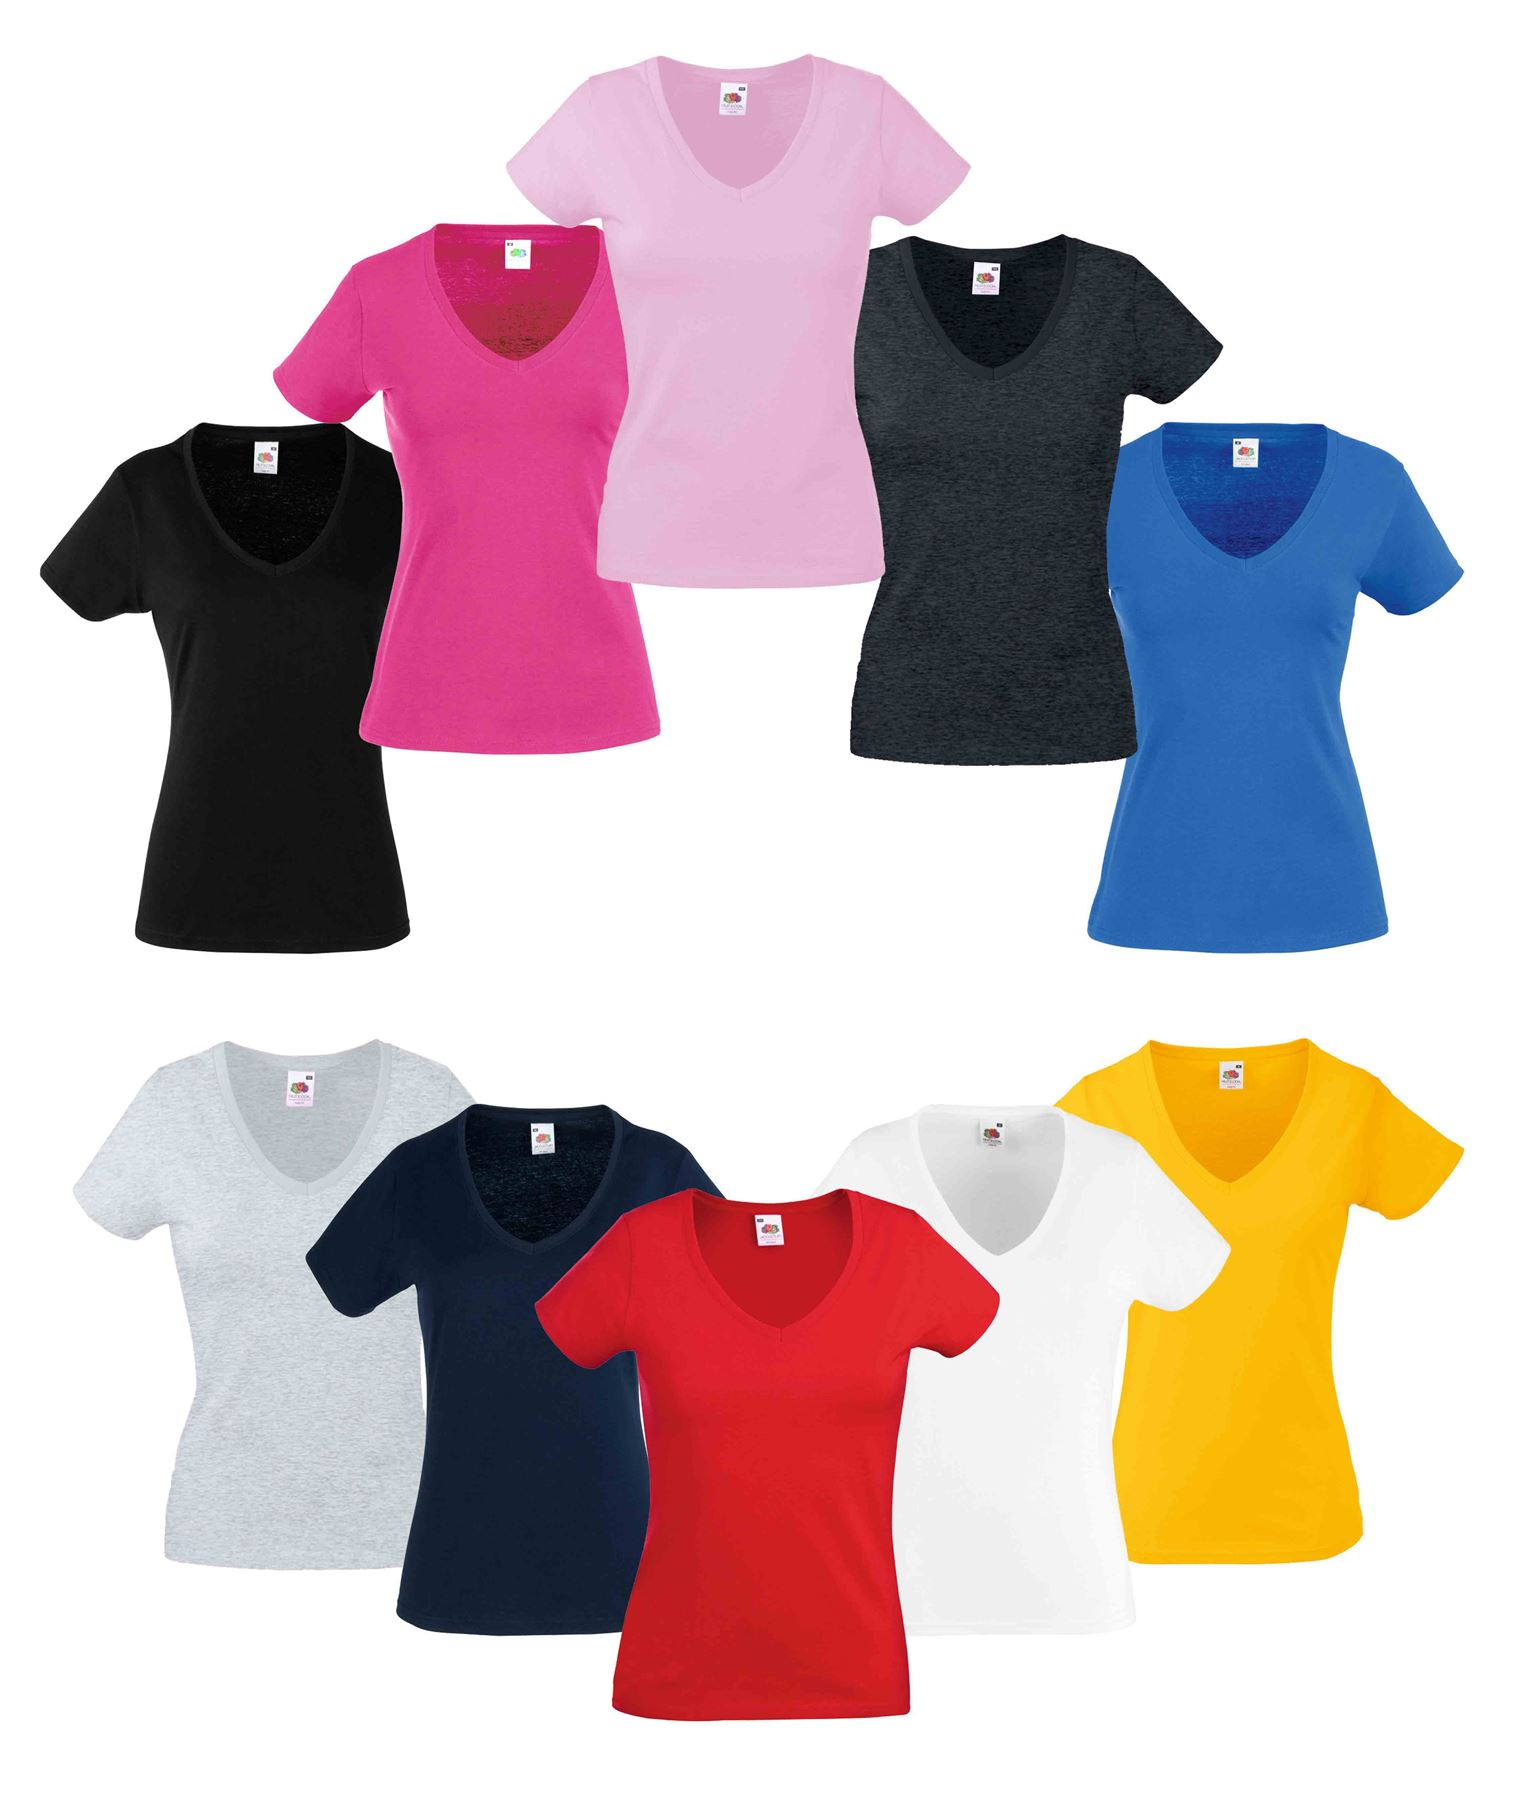 118063bc Fruit Of The Loom LADIES T-SHIRT V-NECK LADY FIT COTTON LYCRA TOP ...